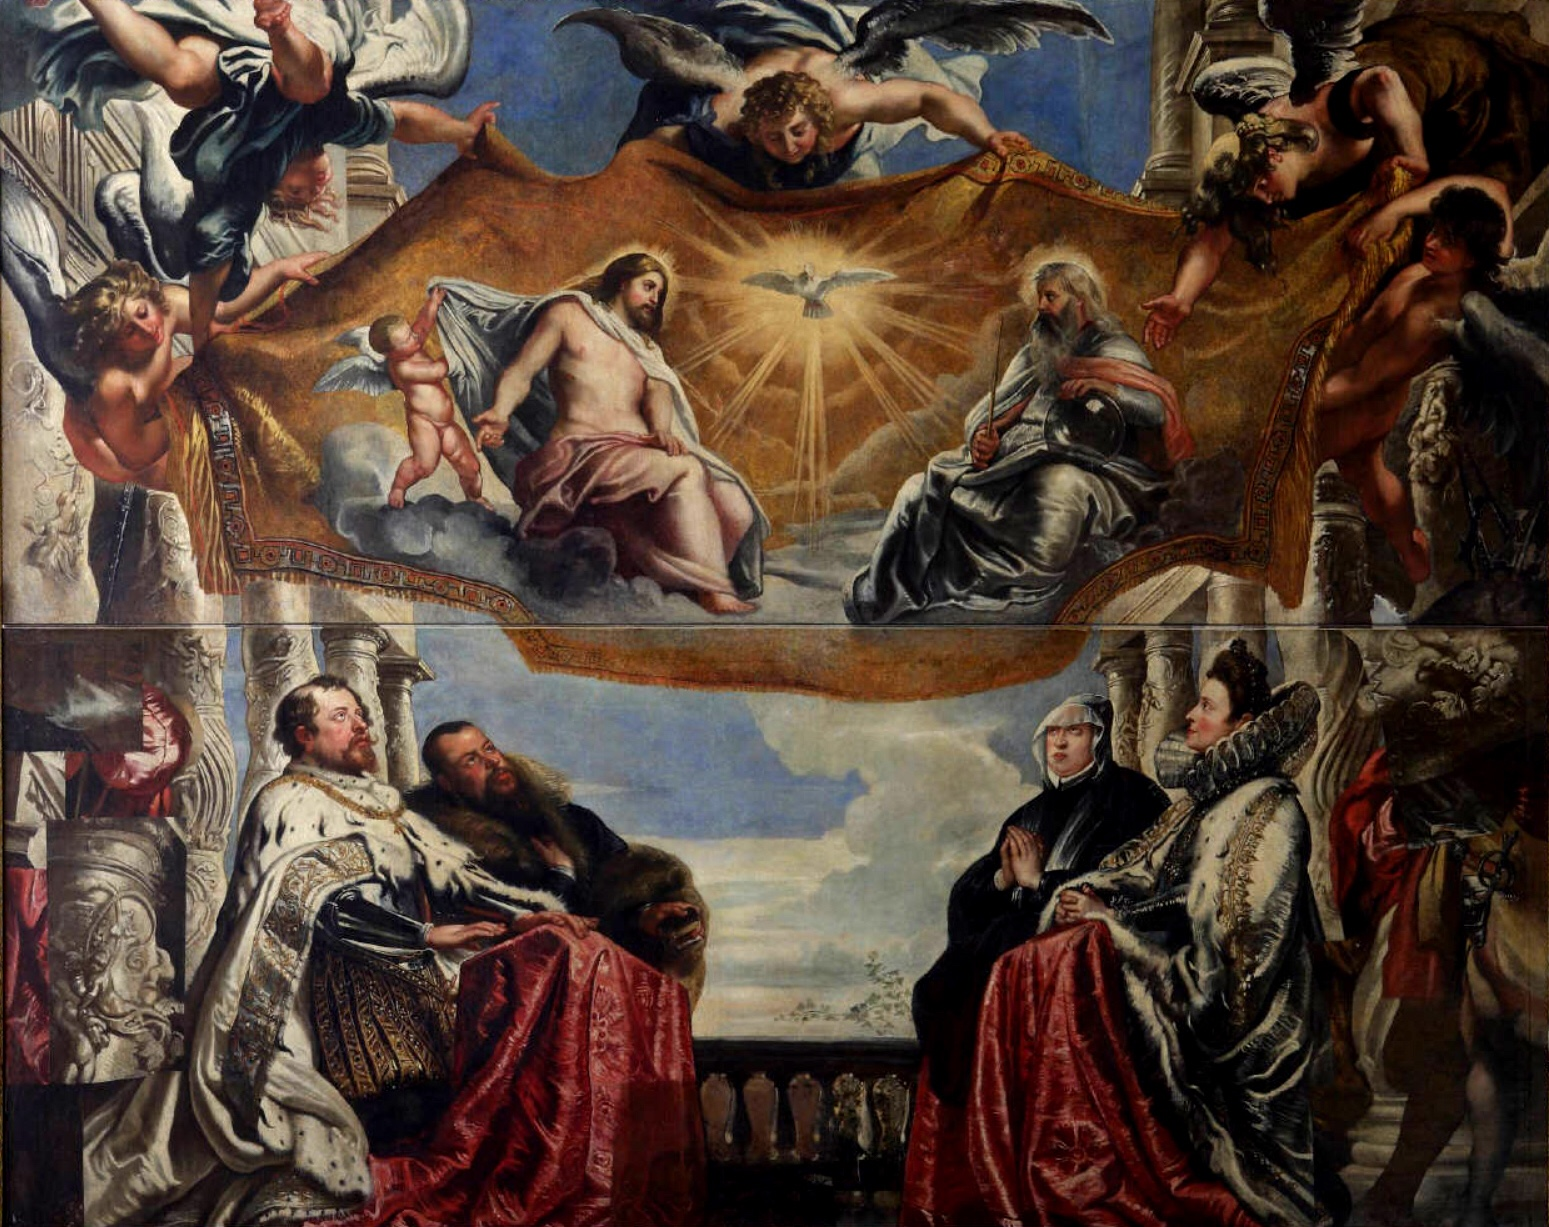 Creator:Peter Paul Rubens. Title: ''The Gonzaga Family Worshipping the Holy Trinity. Date: Between 1604 and 1605. This work is in the public domain. {{ PD-US }}